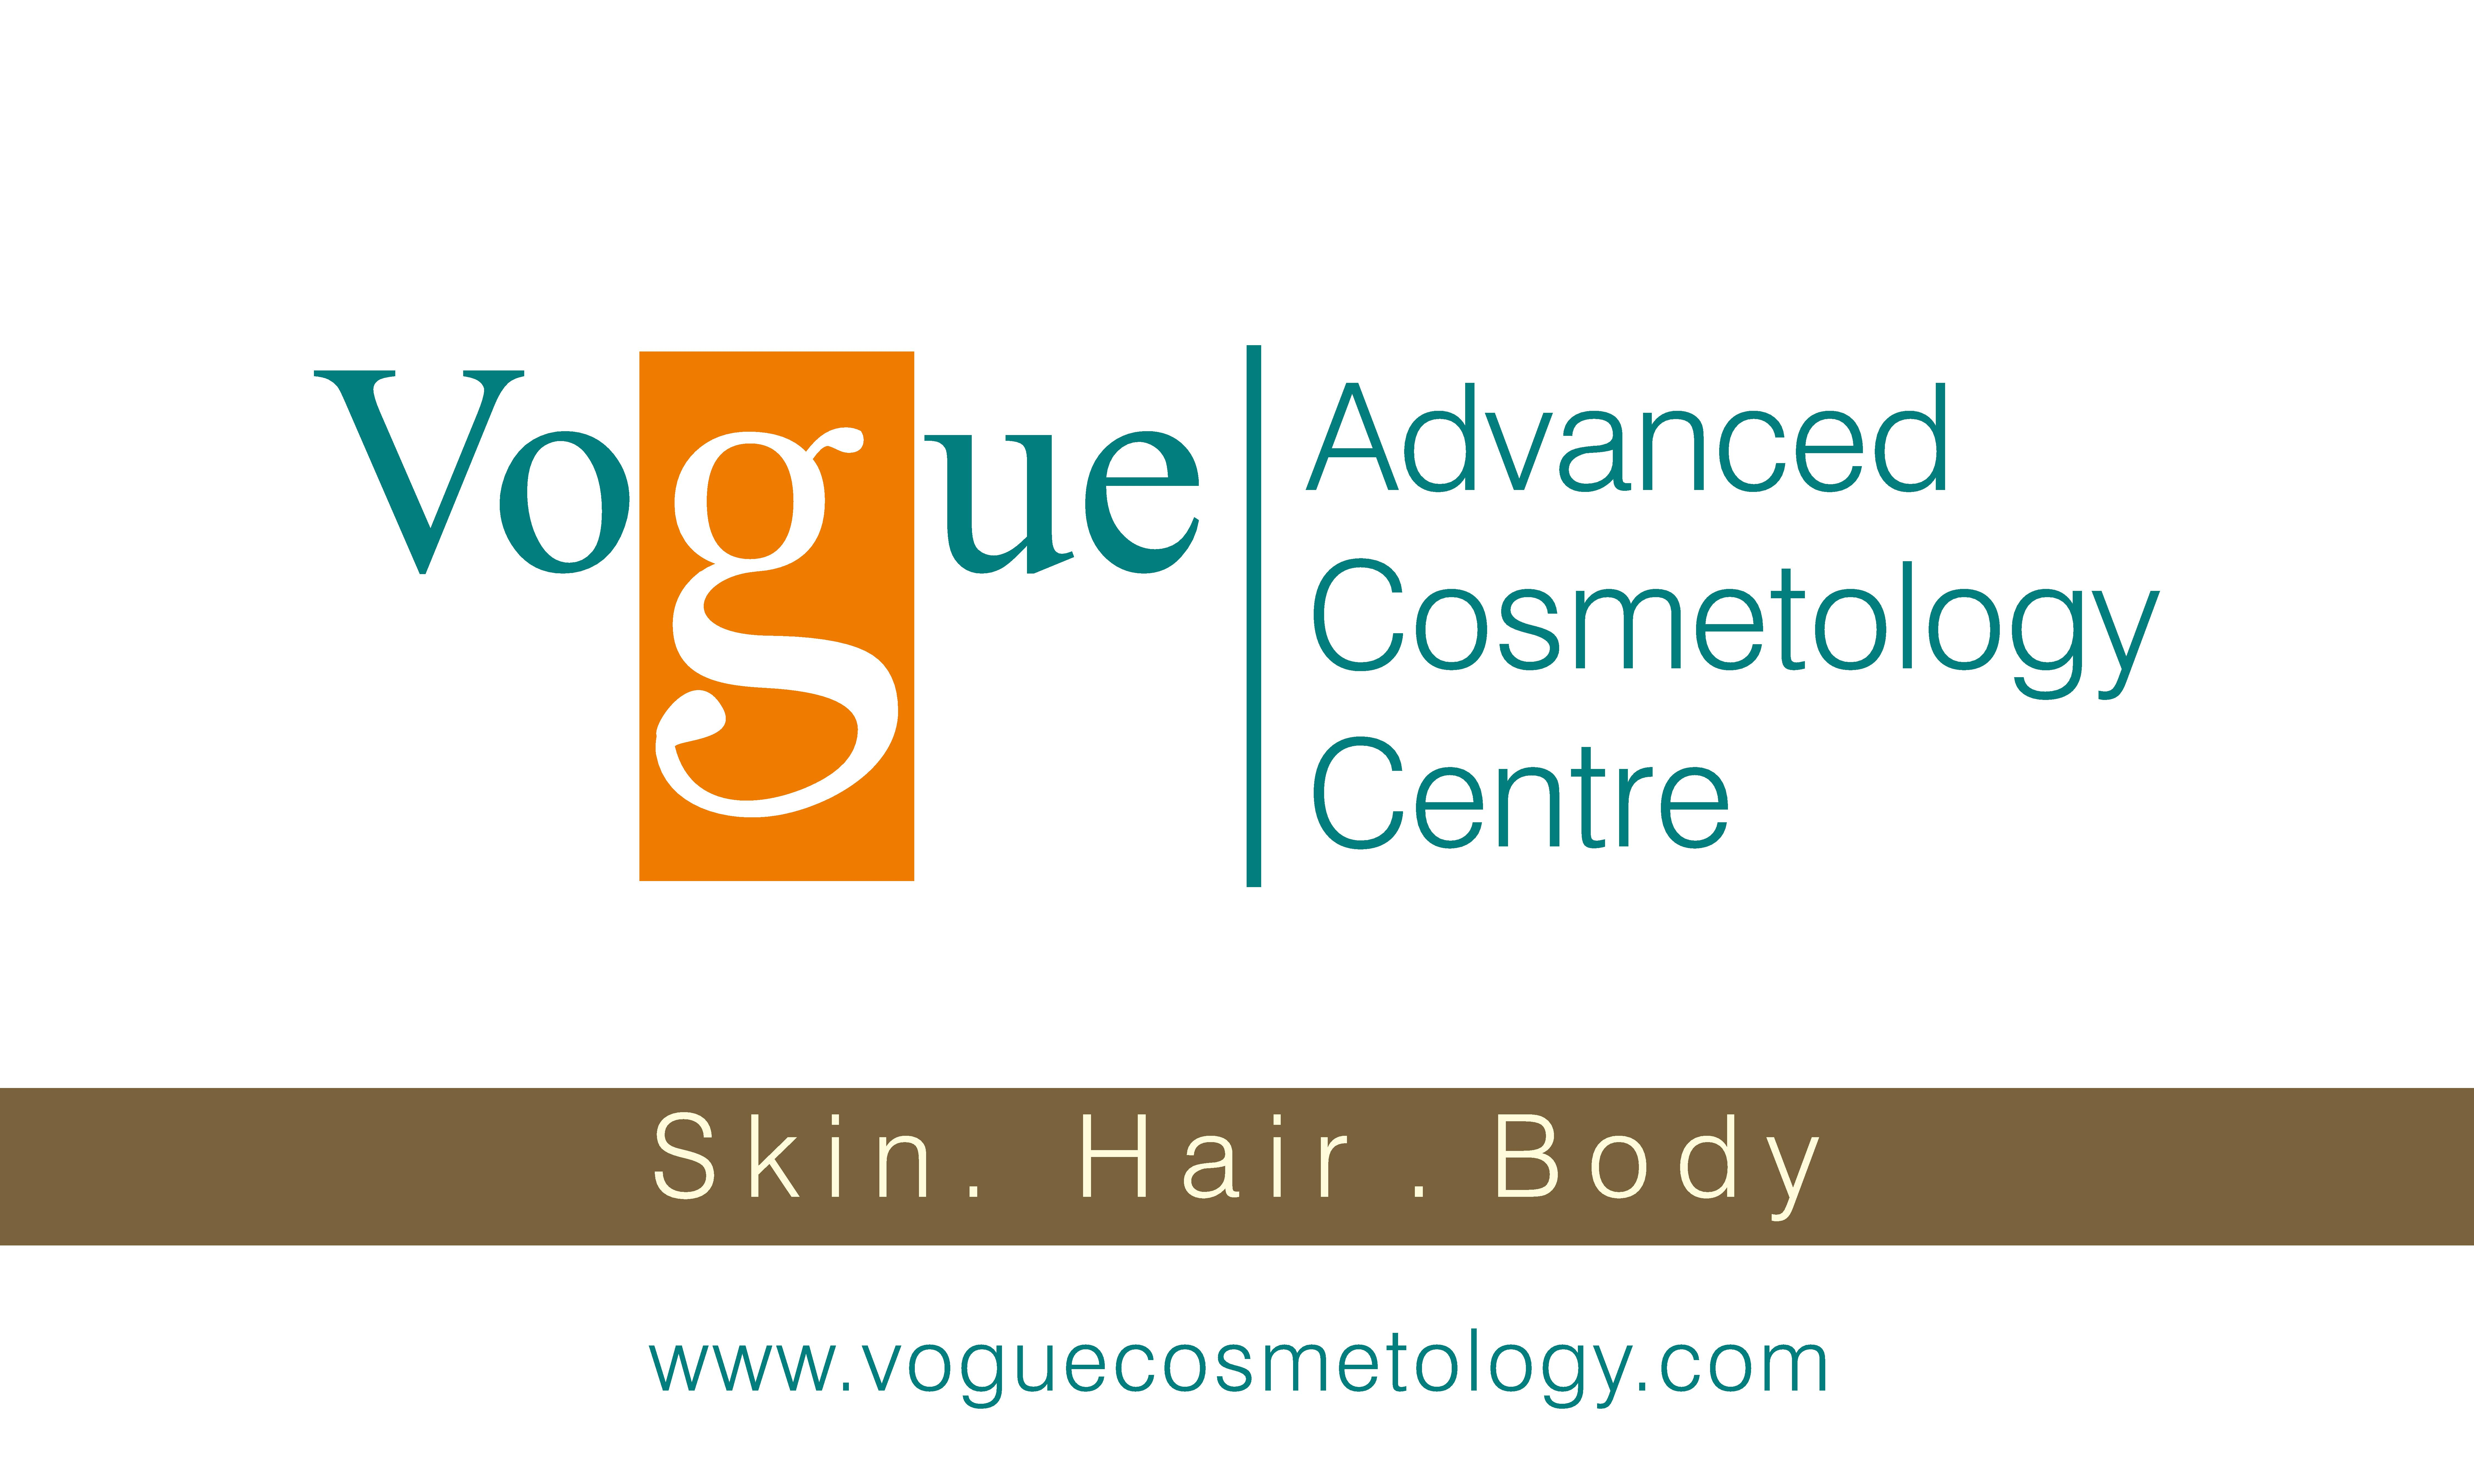 Vogue Advanced Cosmetology Centre